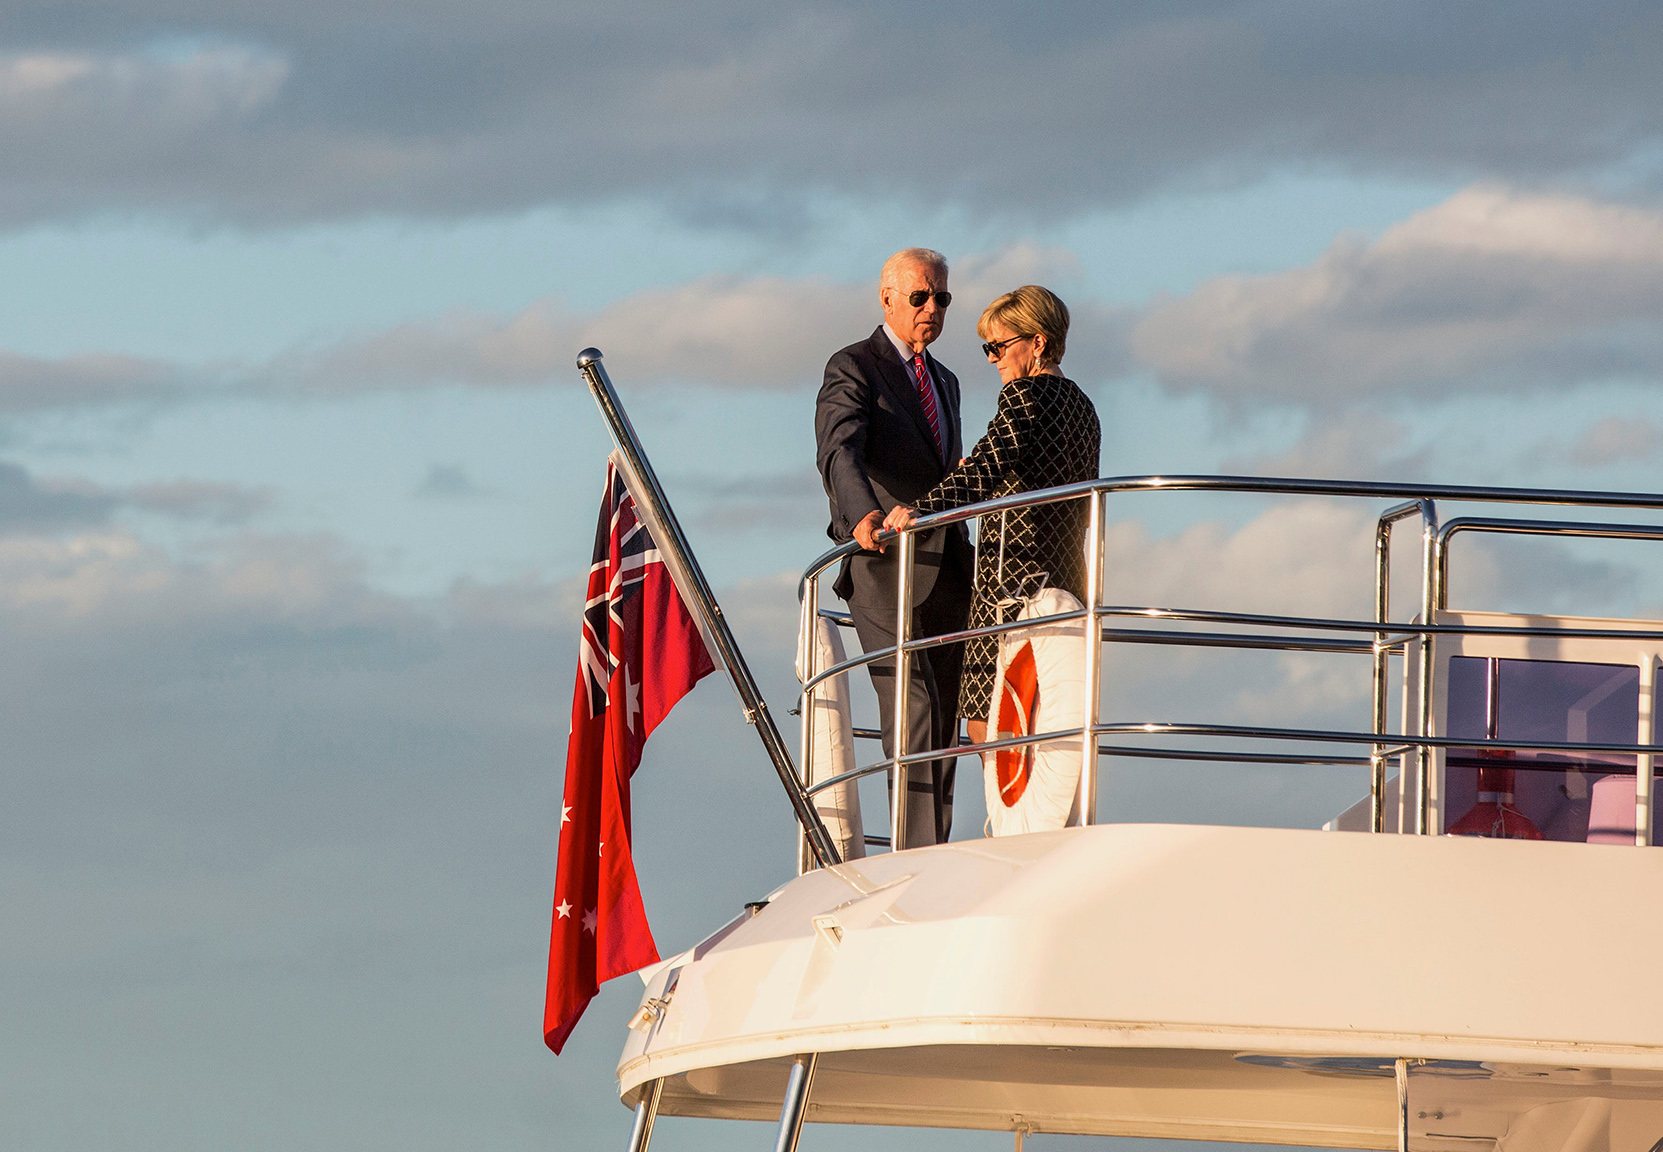 U.S. Vice President Joe Biden talks with Australian Foreign Affairs Minister Julie Bishop as they stand on a boat at sunset on Sydney Harbour